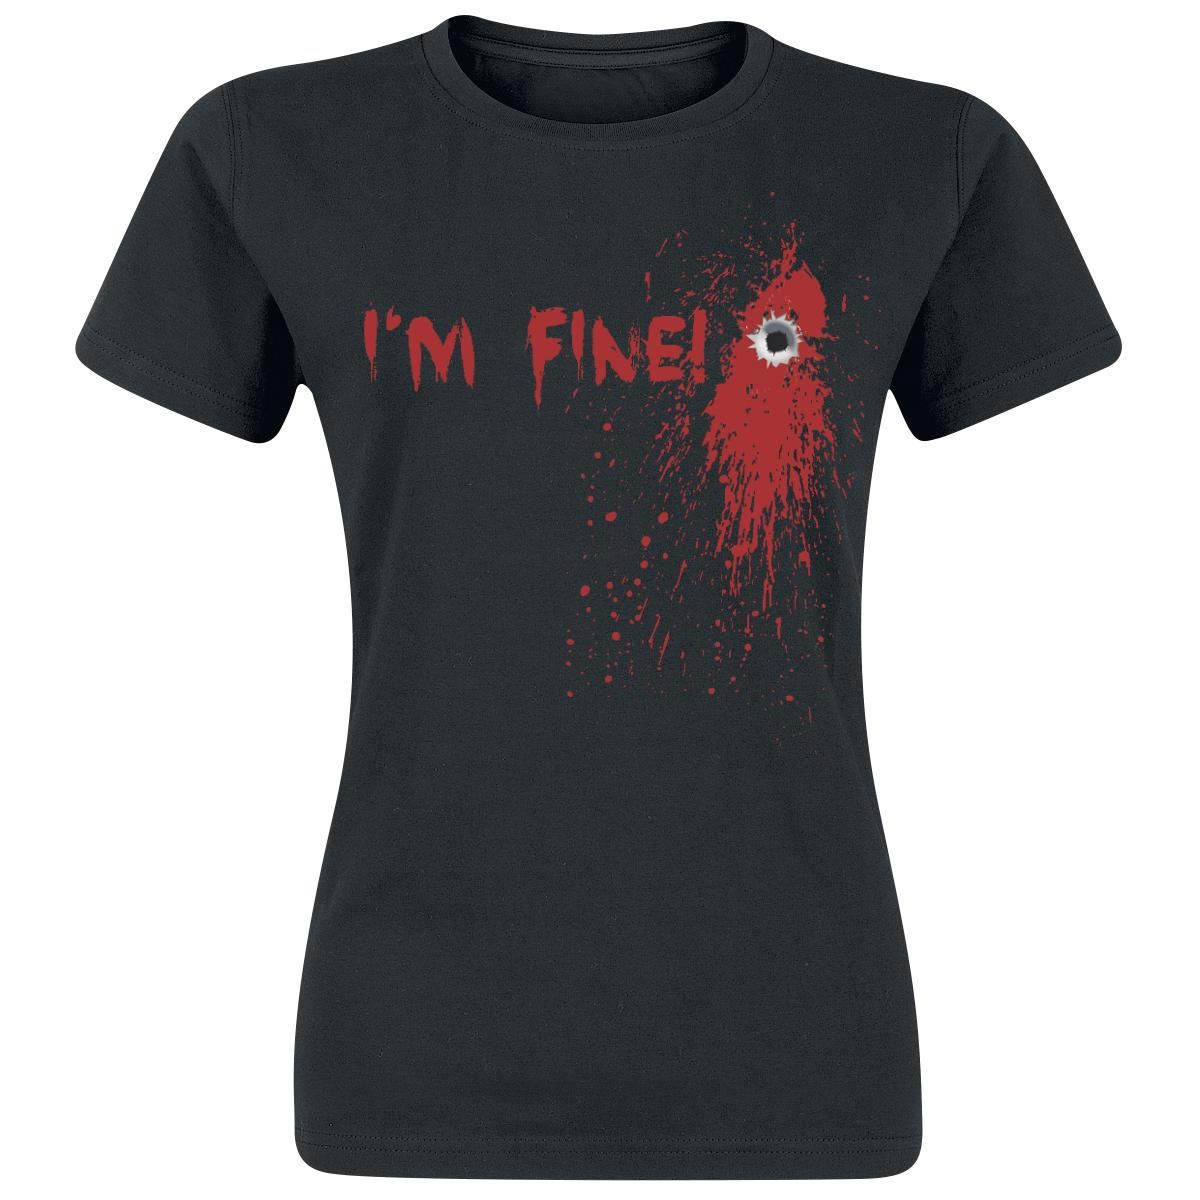 I'm Fine!  T-Shirt  »I'm Fine!« | Buy now at EMP | More Fun merch  T-shirts  available online ✓ Unbeatable prices!